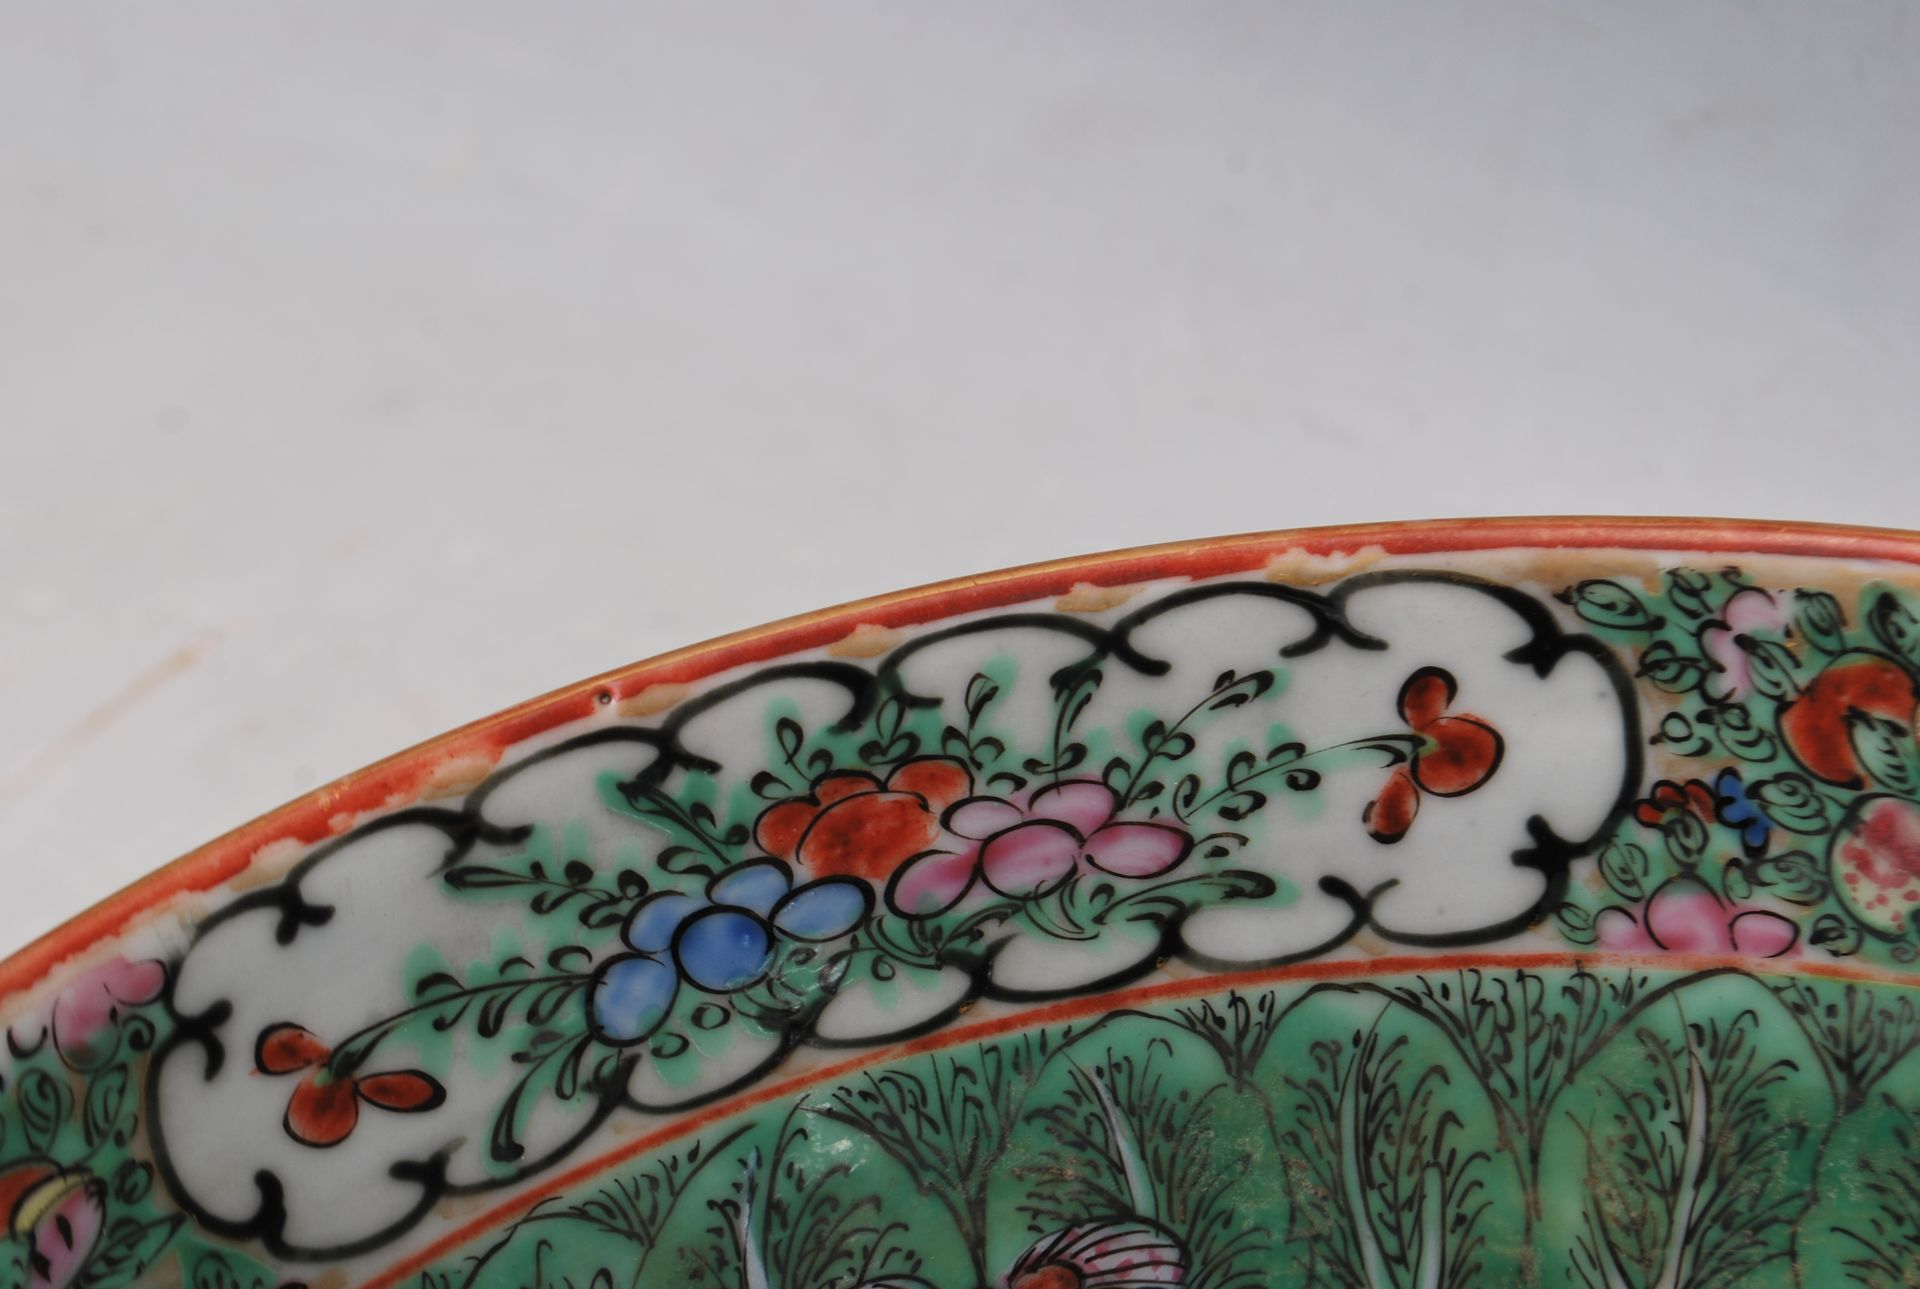 19TH CENTURY CHINESE ORIENTAL CENTRE PIECE BOWL - Image 10 of 11